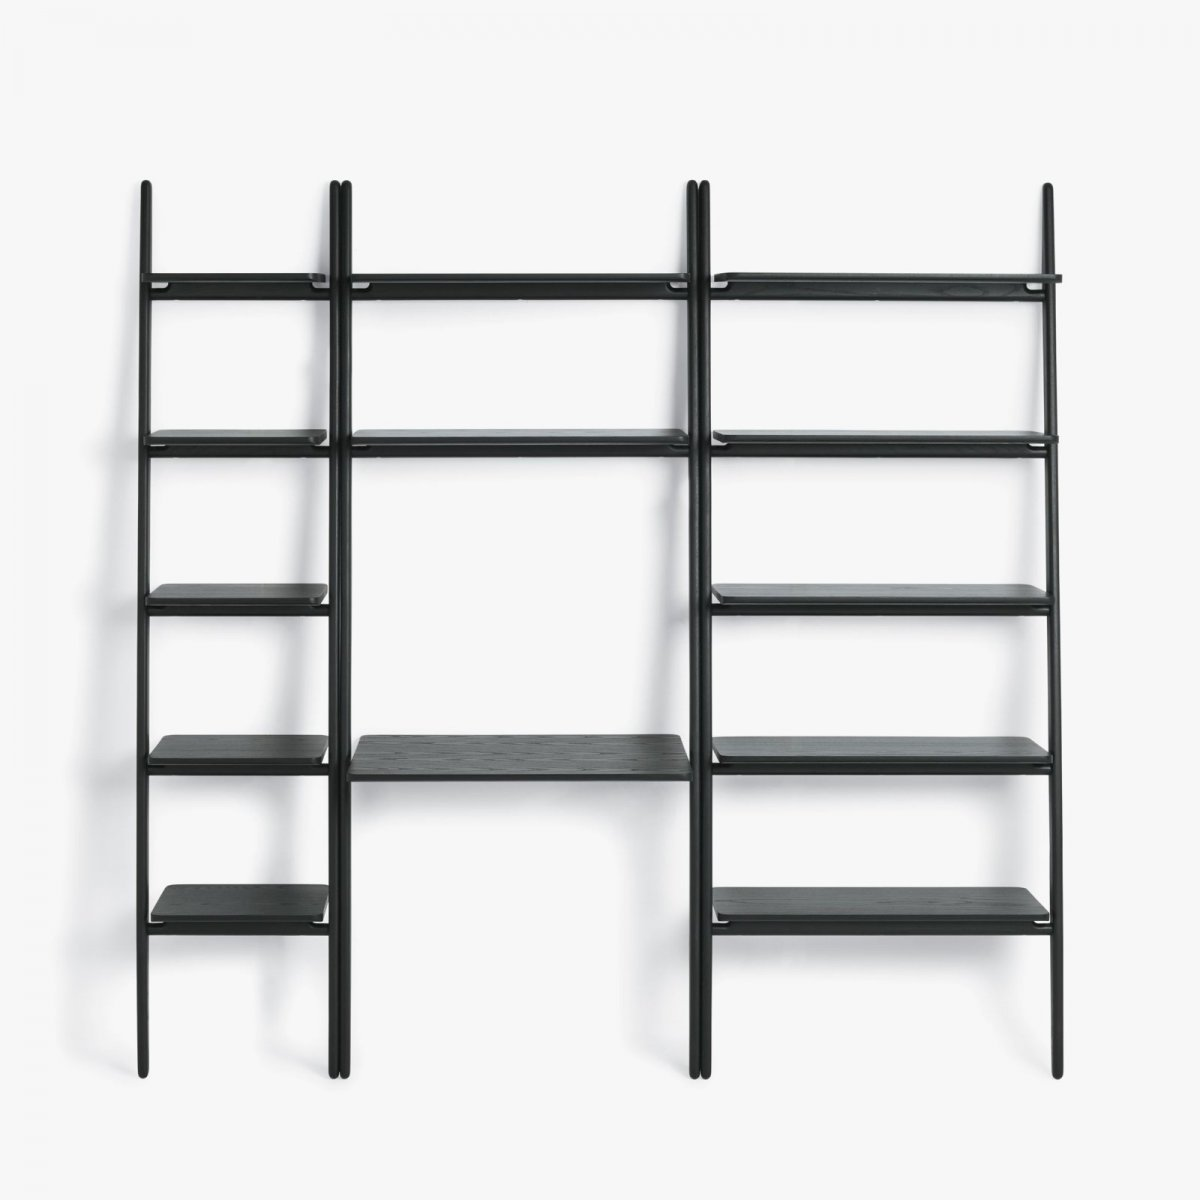 Folk Ladder Shelving & Desk Shelving, black.